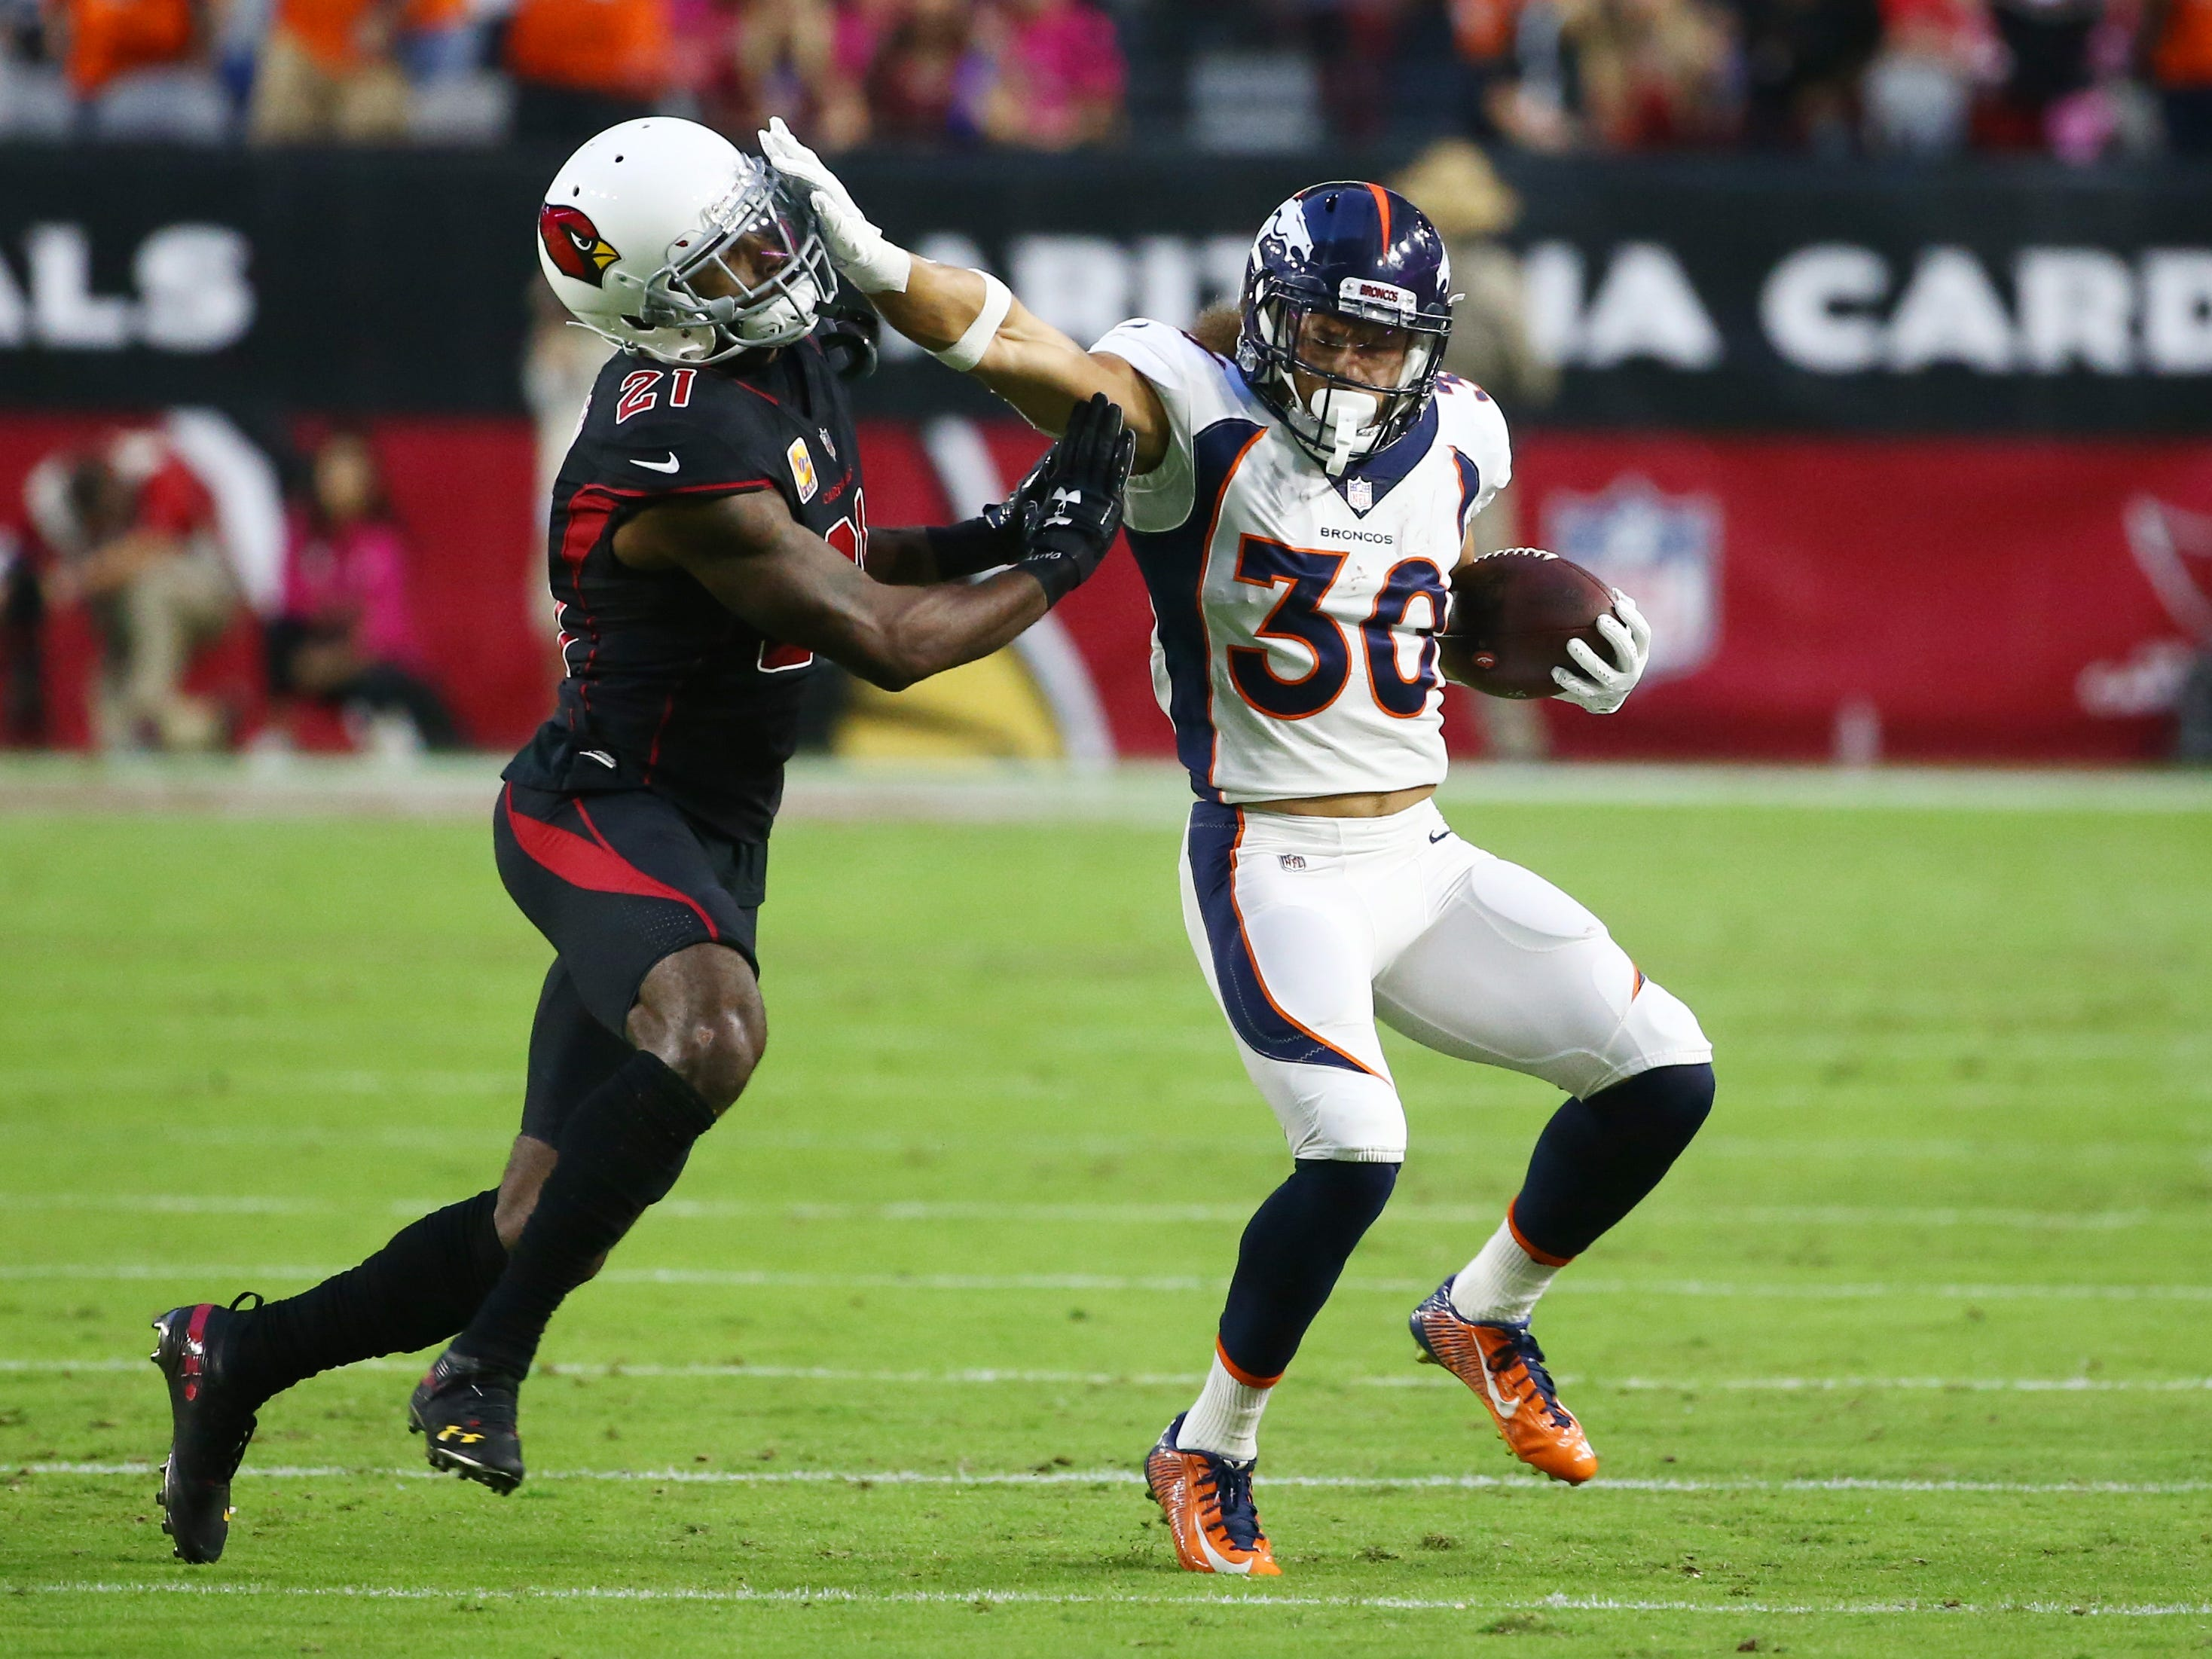 Denver Broncos running back Phillip Lindsay pushes away Arizona Cardinals Patrick Peterson in the first half at State Farm Stadium in Glendale, Ariz.